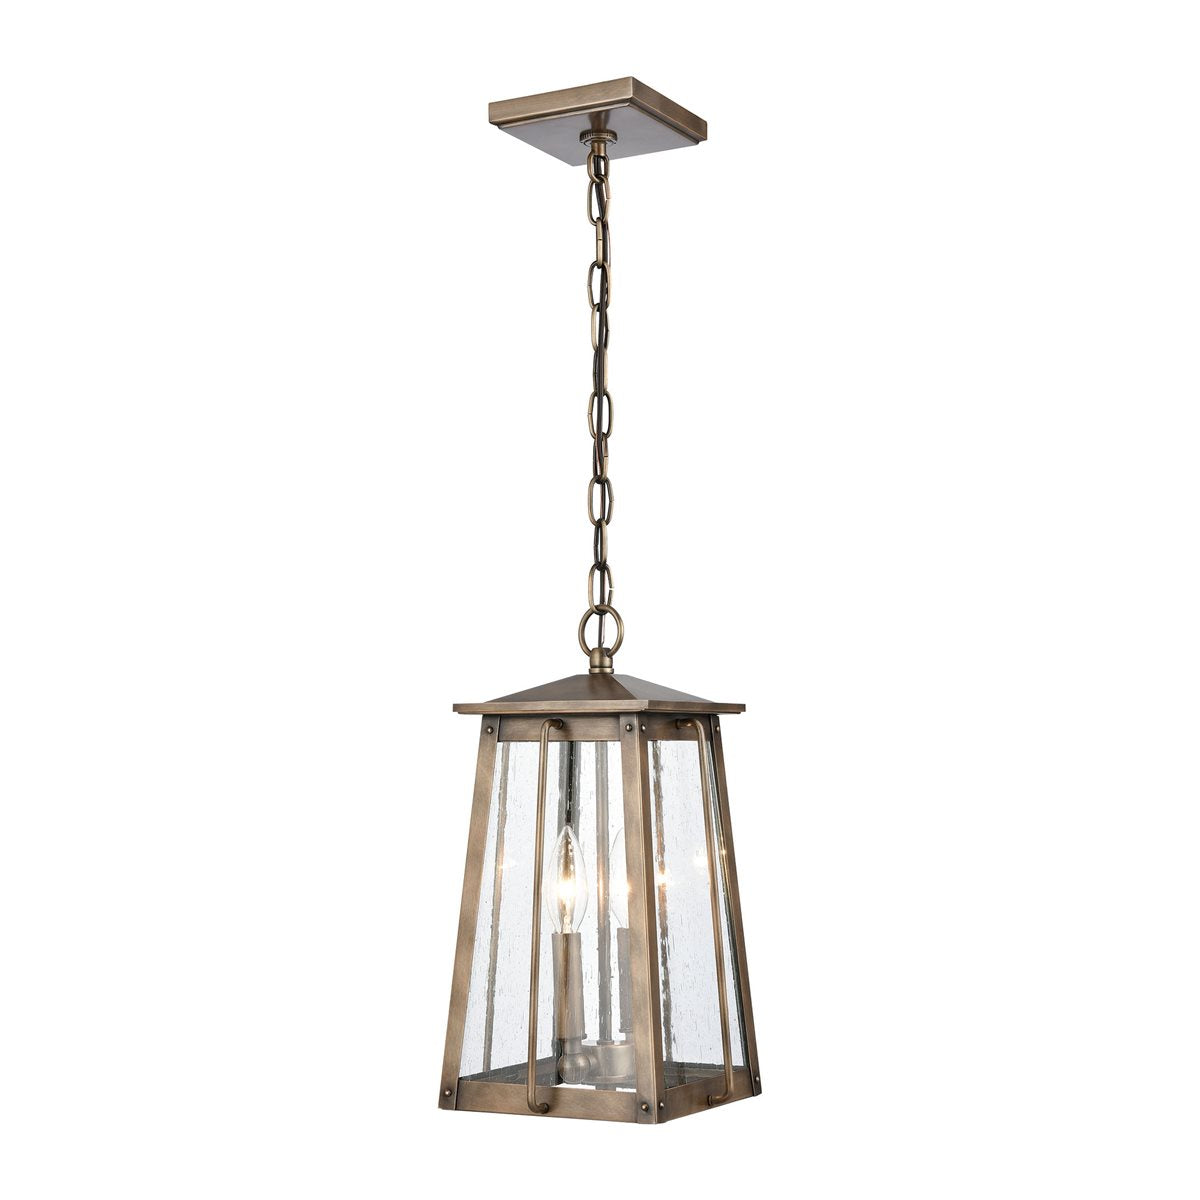 Douglas 2 Light Outdoor Pendant